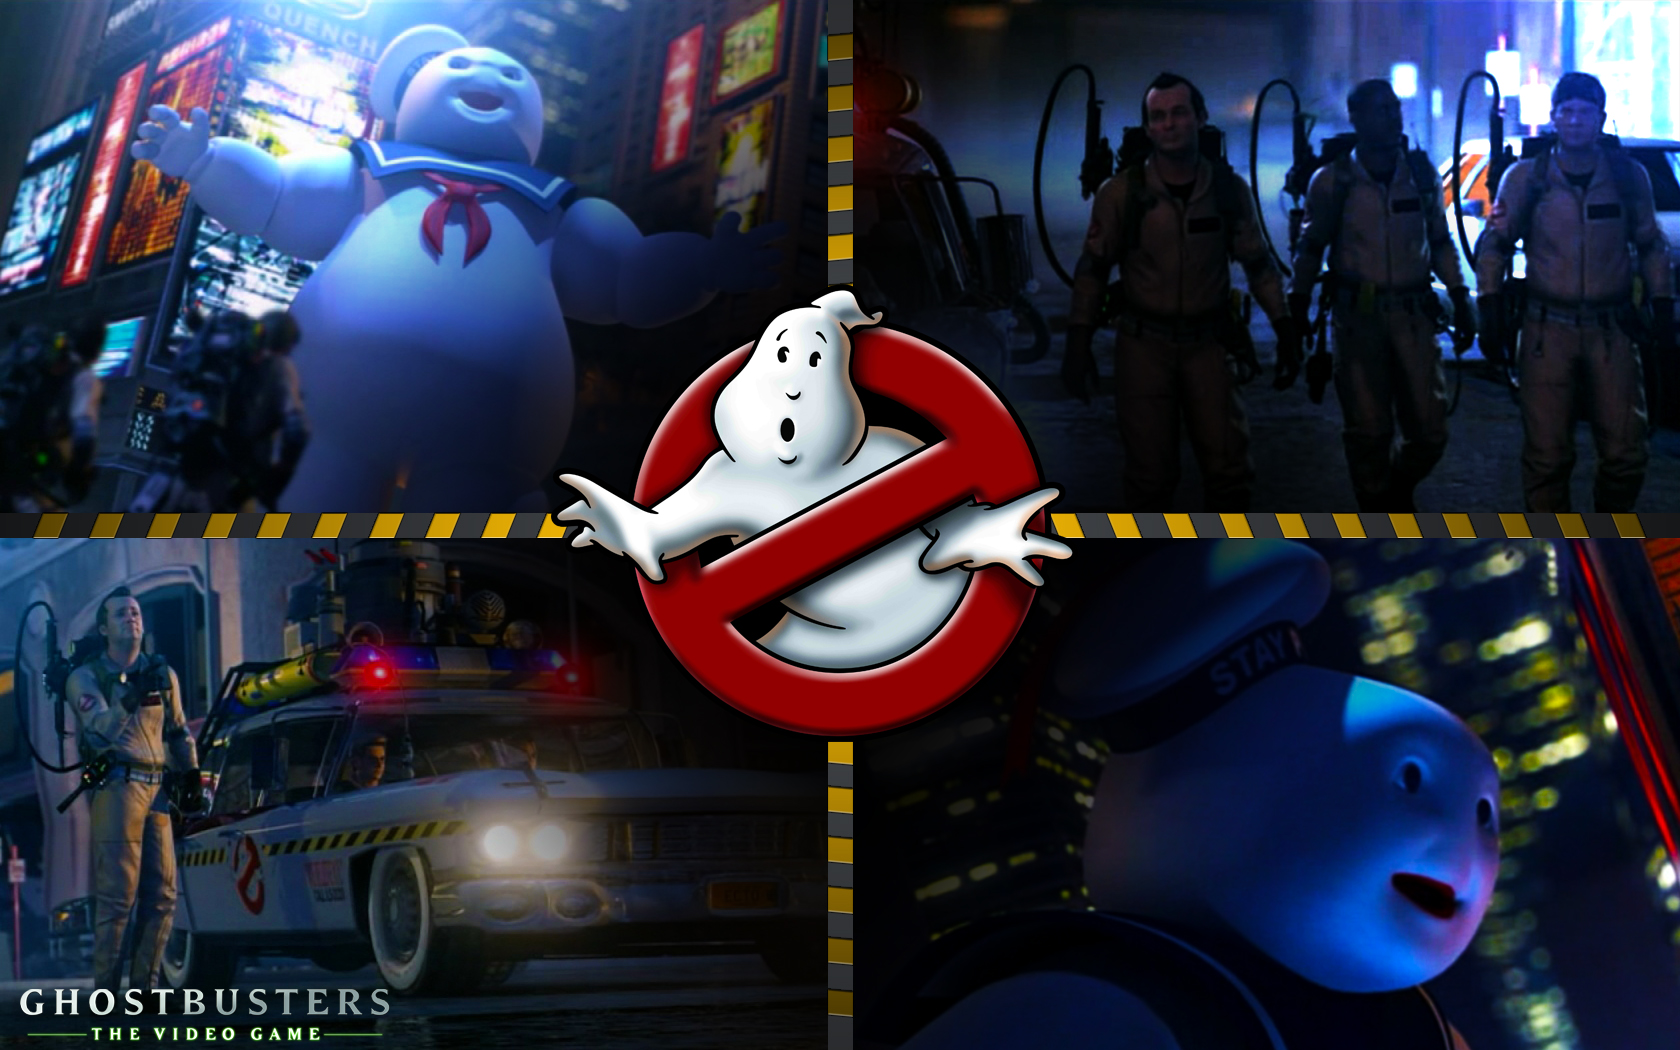 Ghostbusters wallpaper hd free wallpapers for - Ghostbusters wallpaper ...